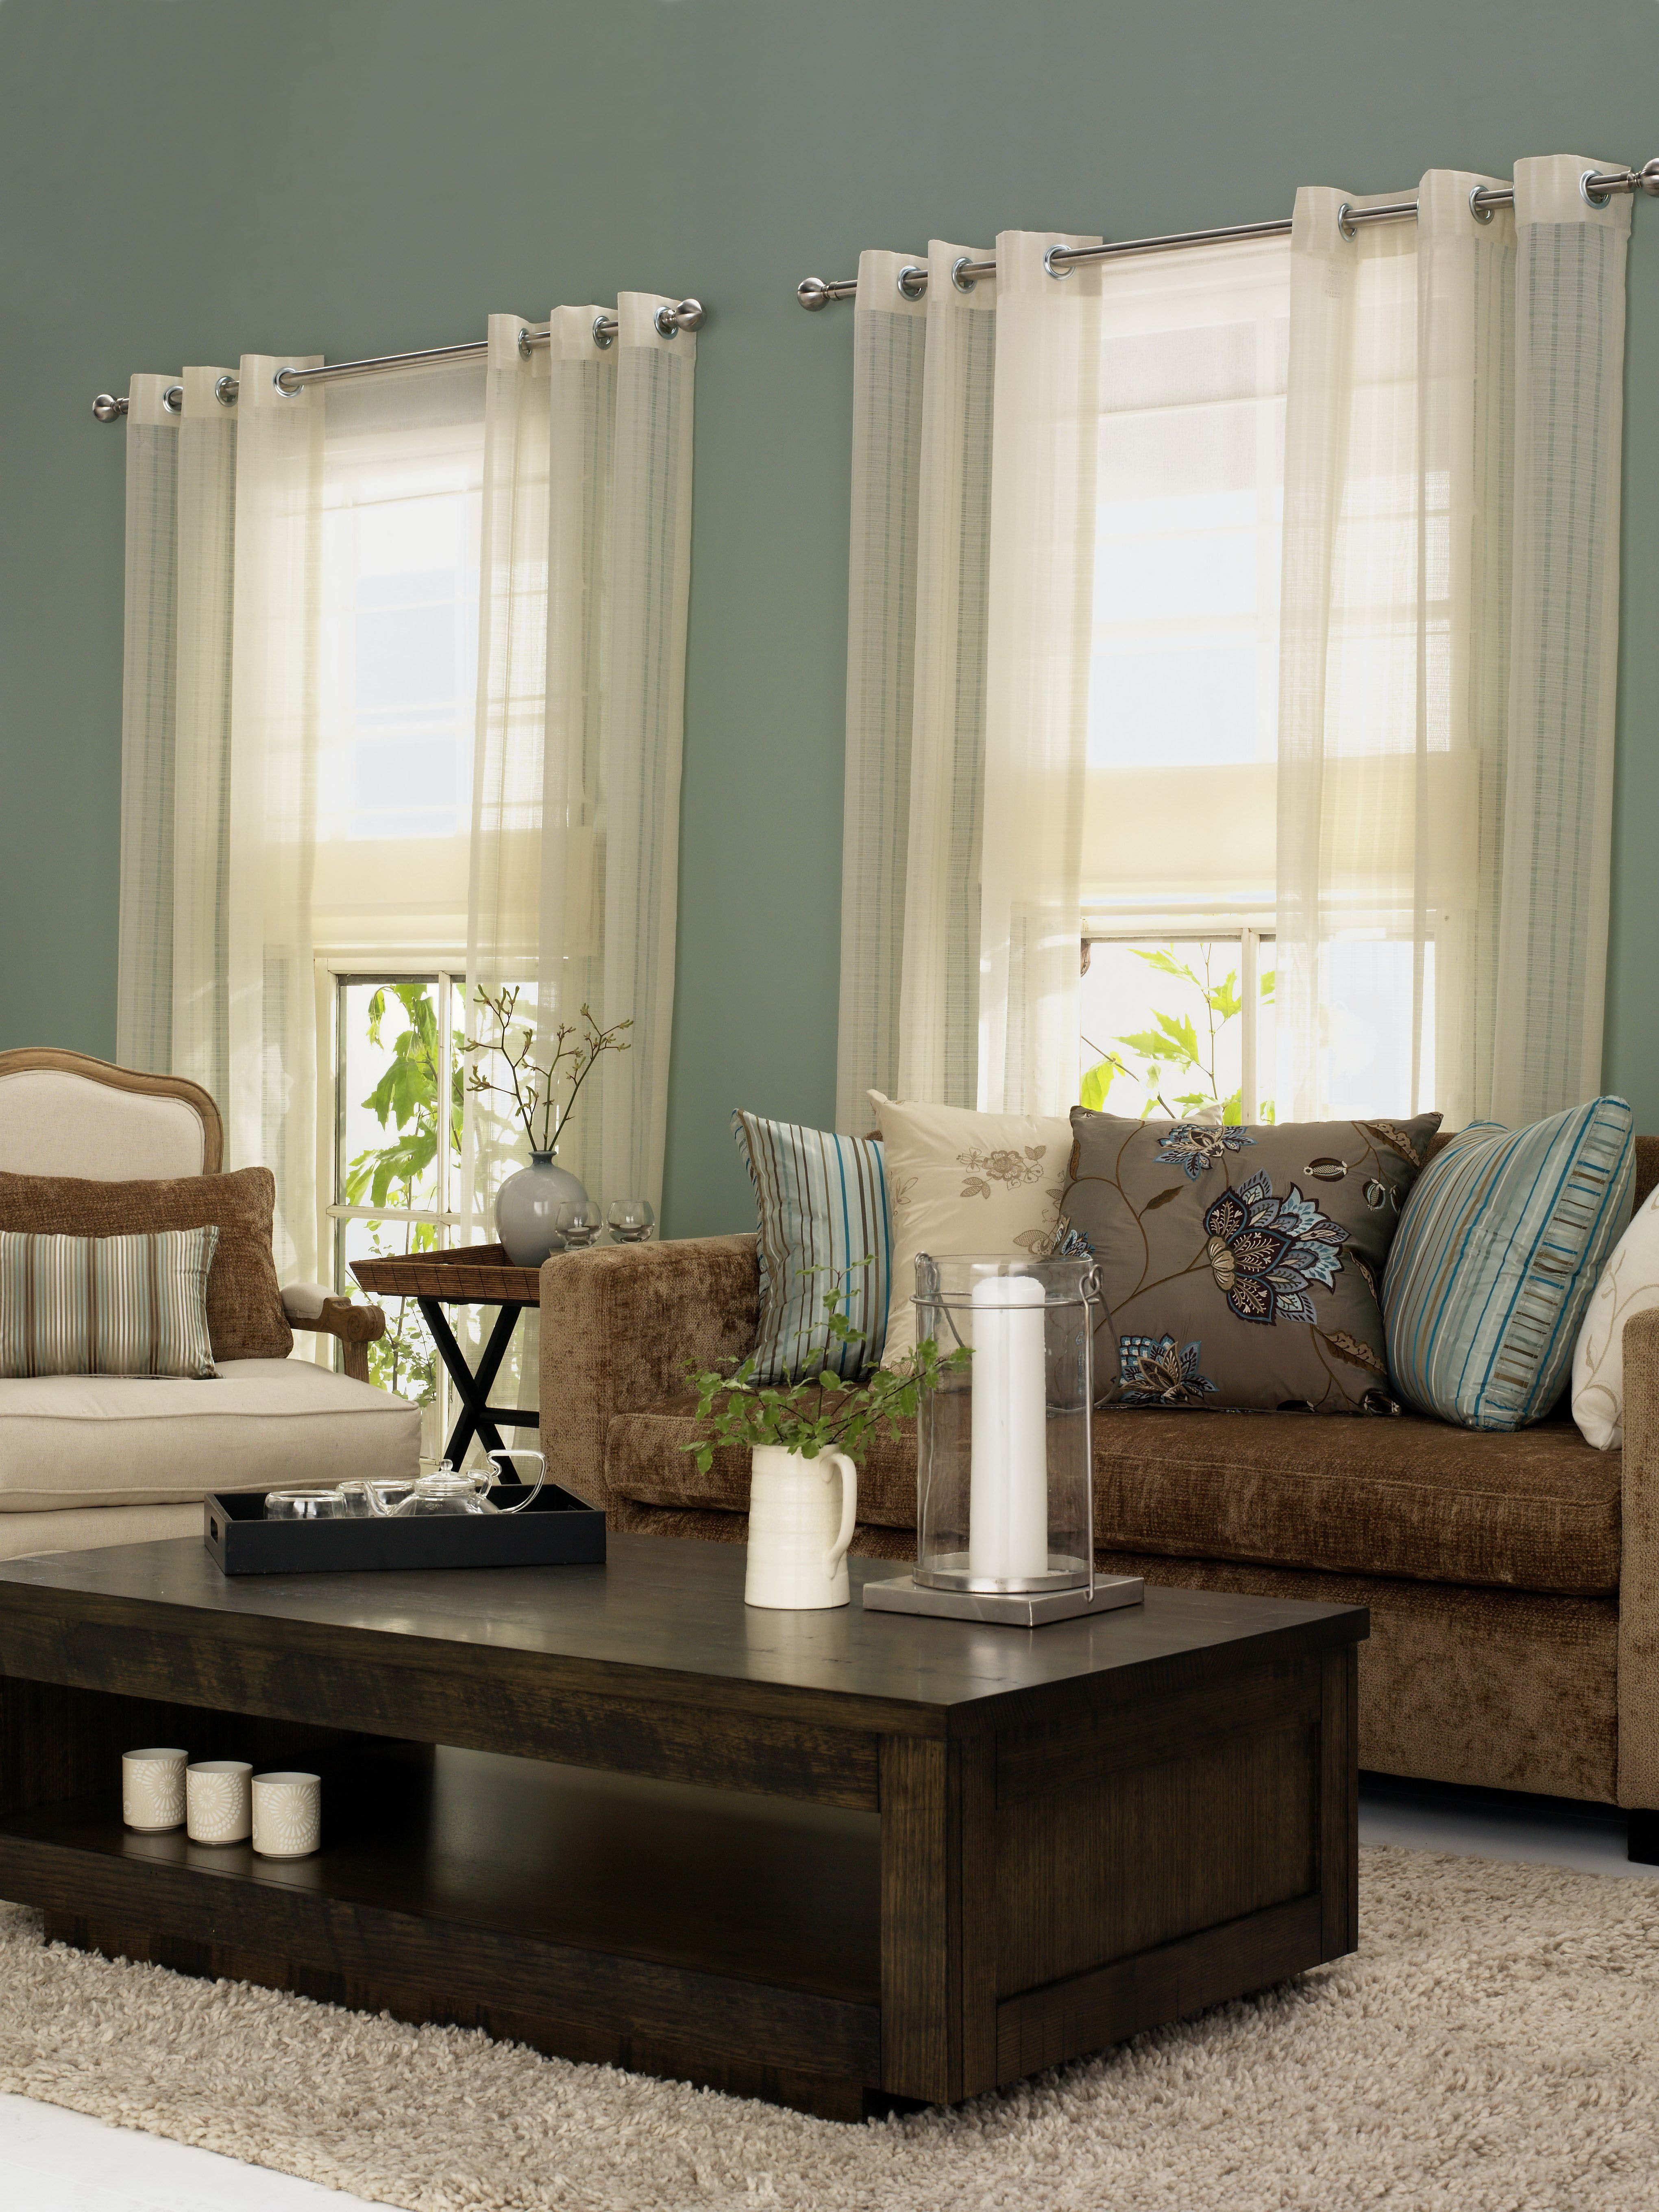 Lounge room showing eyelet curtains for more curtain styles go to